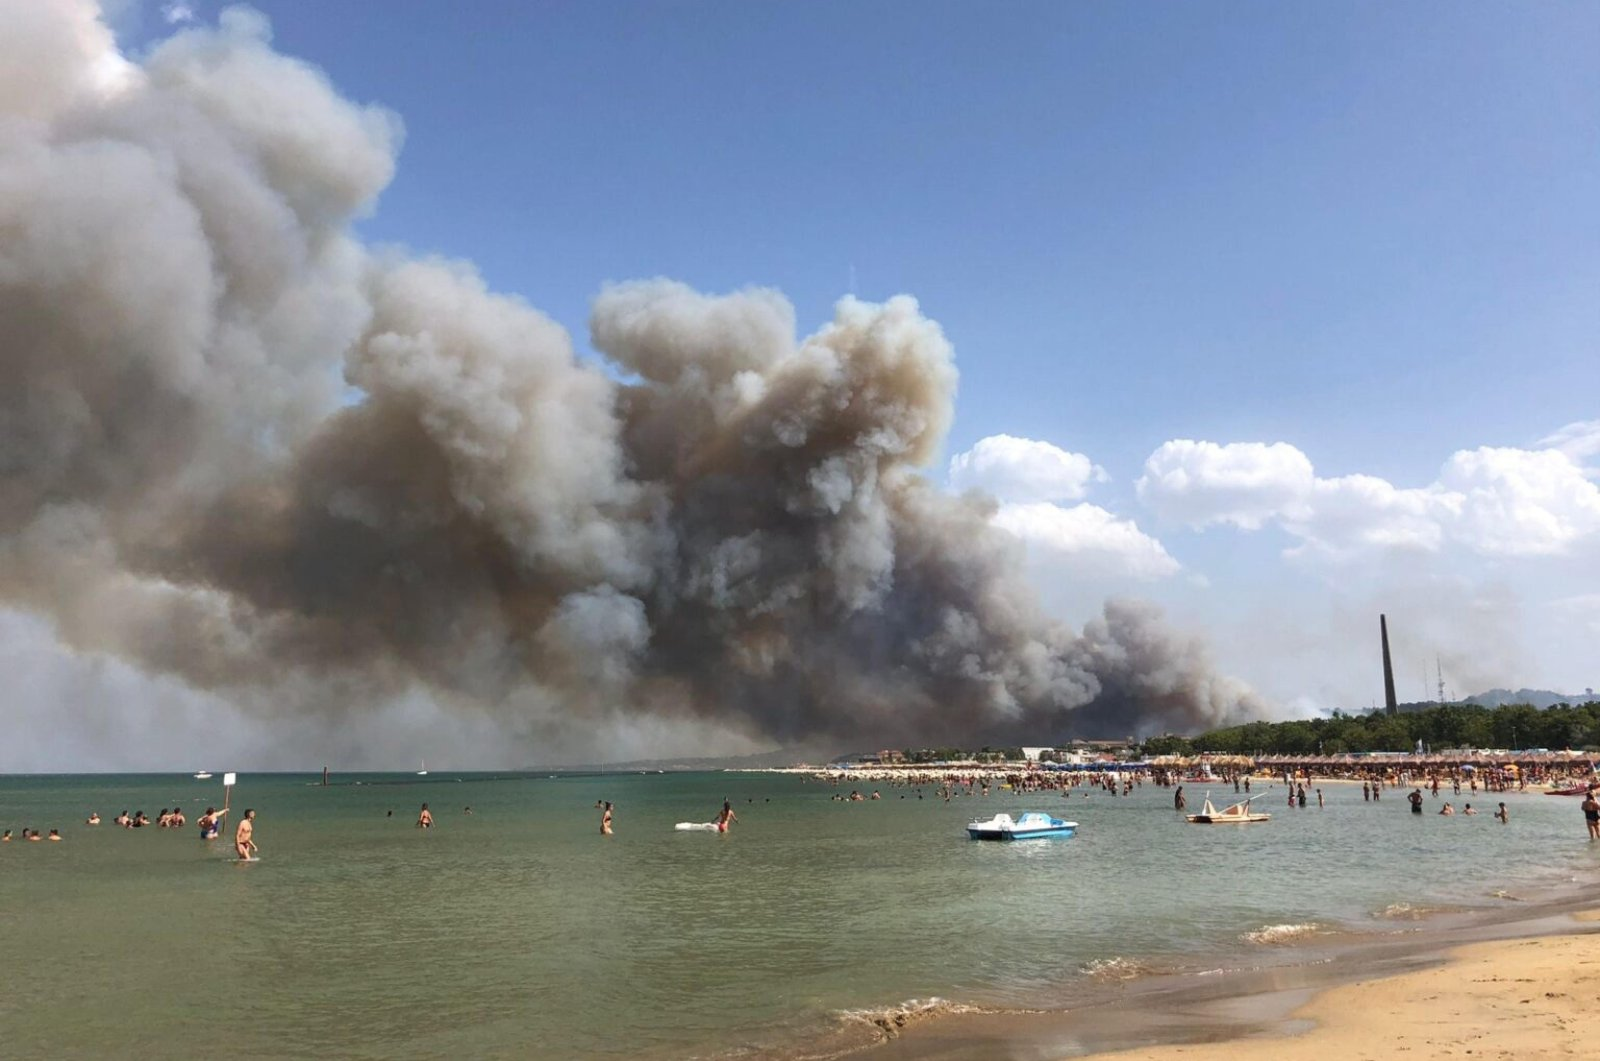 Smoke billows from fire in the Dannunziana Reserve as people watch from the waters at Pescara, Italy, Aug. 1, 2021. (EPA Photo)